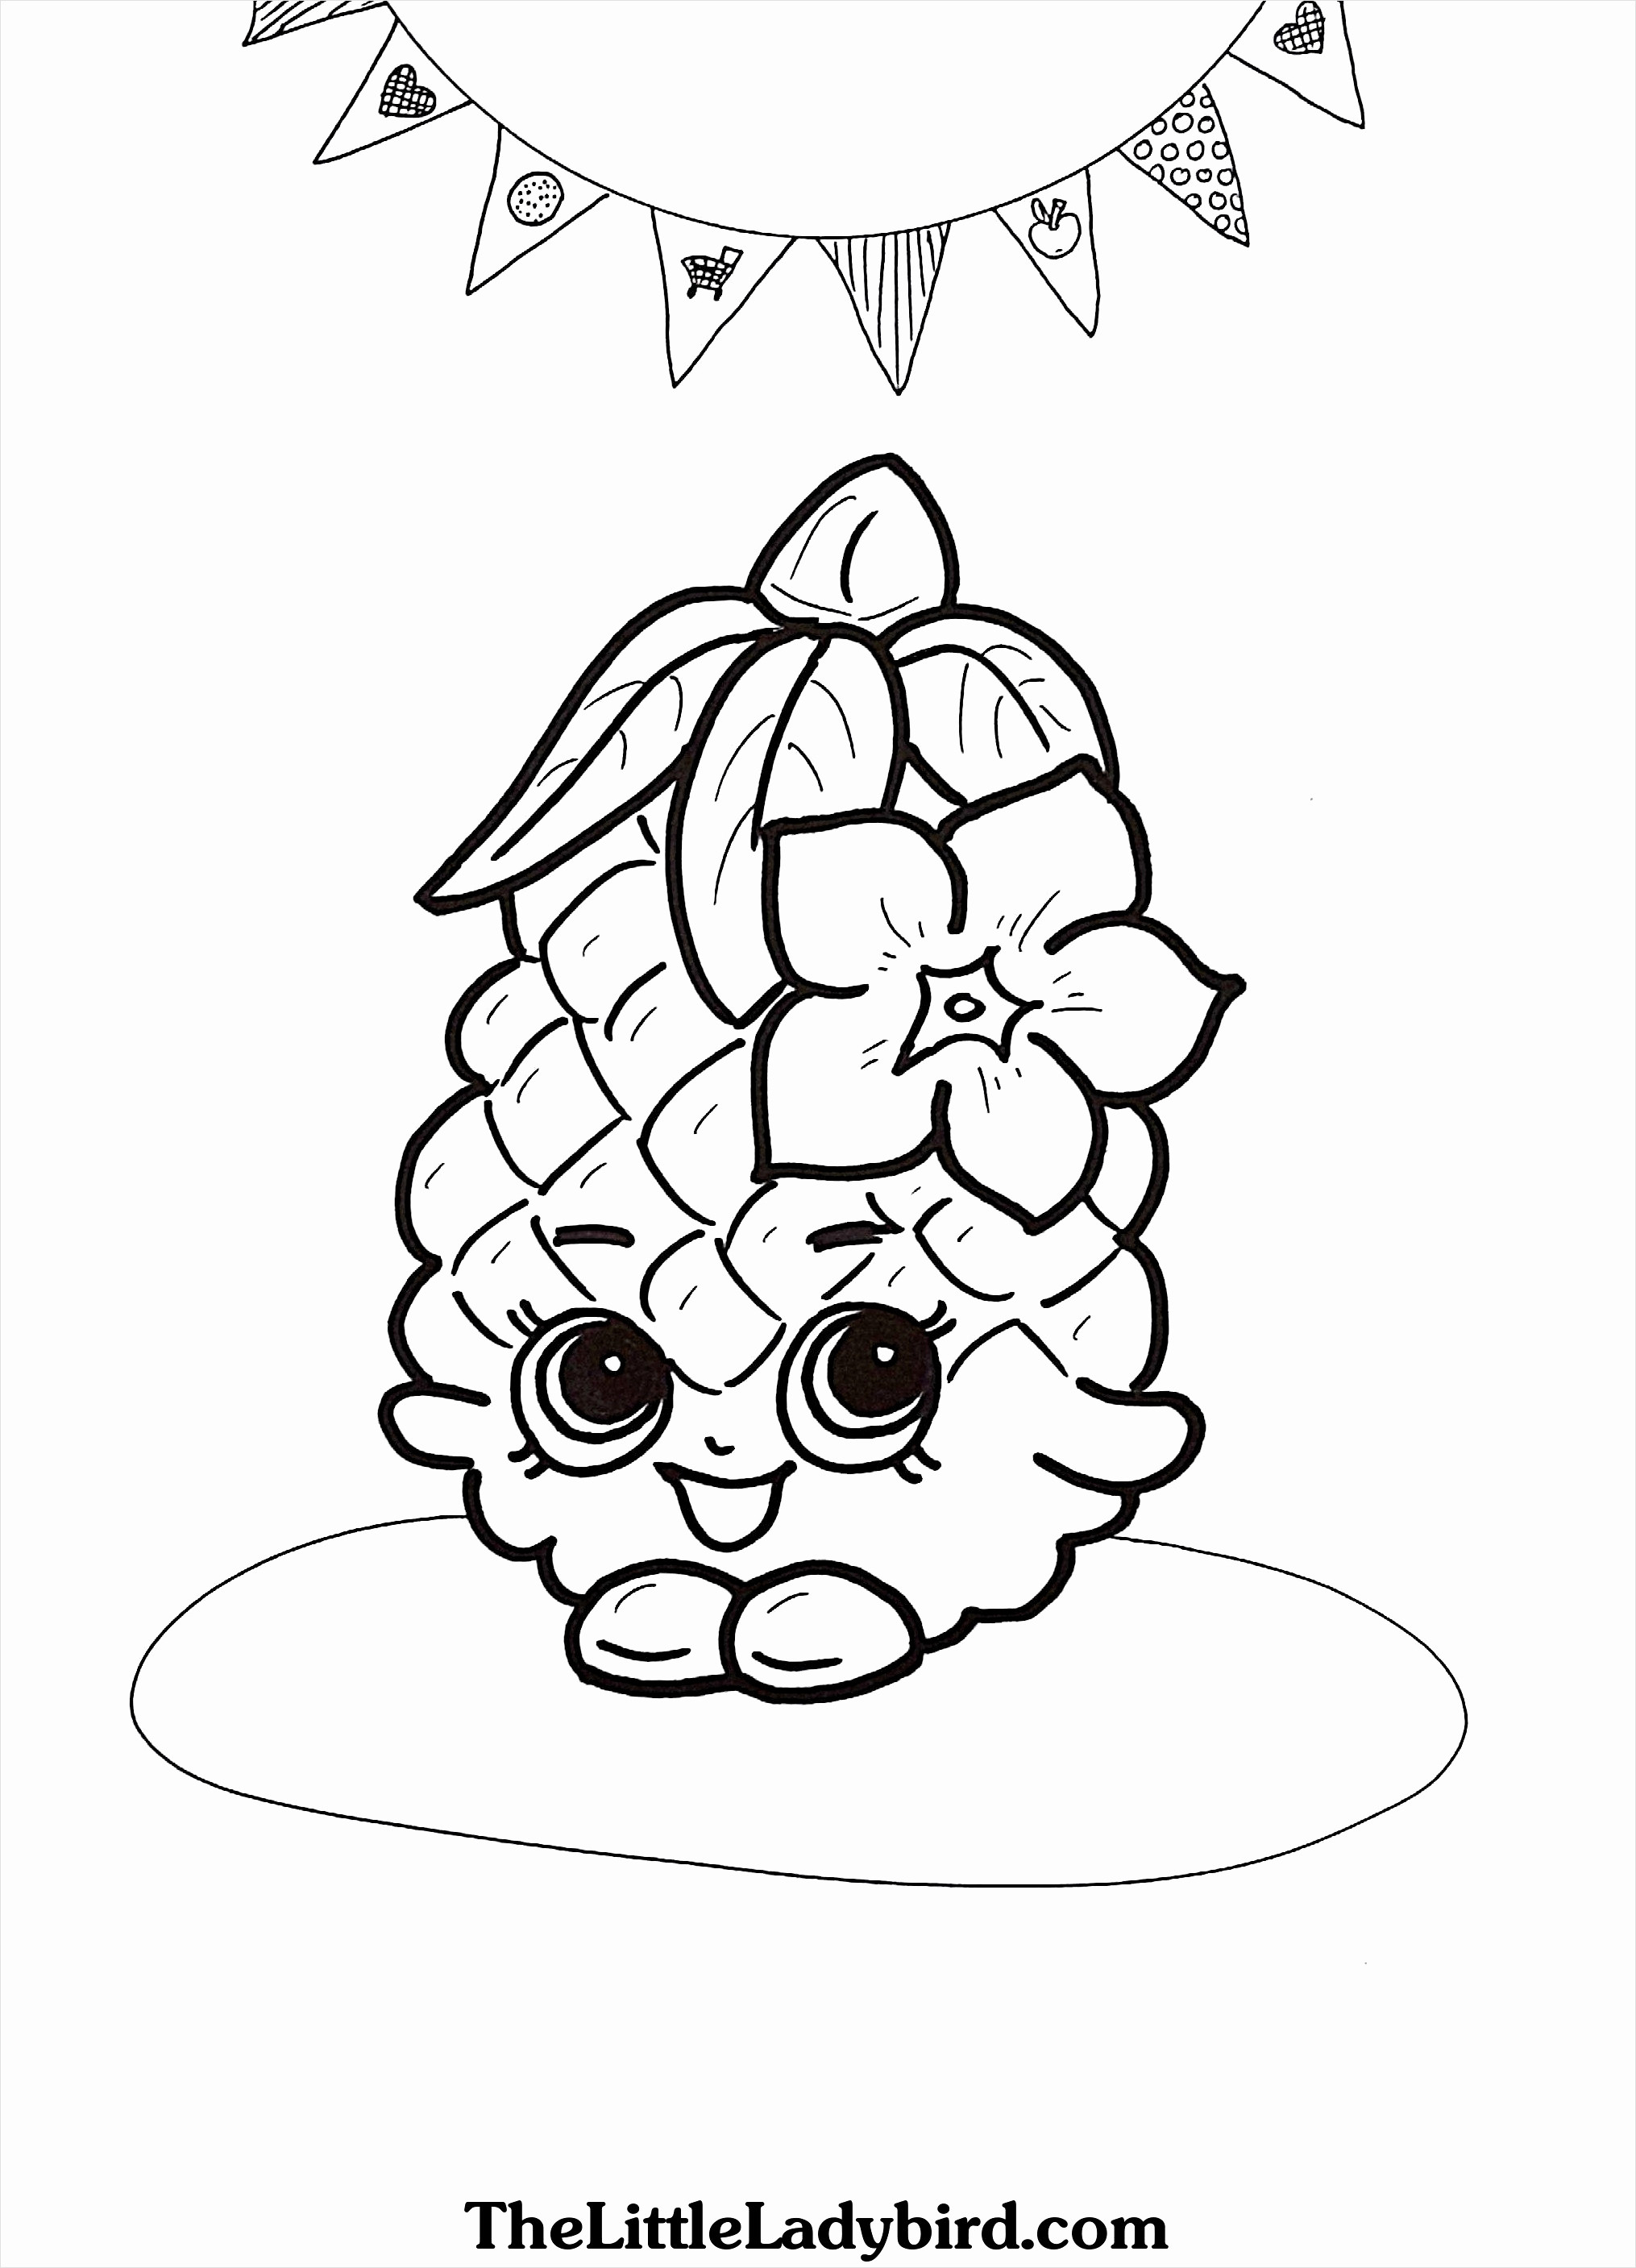 Magic Tree House Coloring Pages  to Print 12p - Free Download